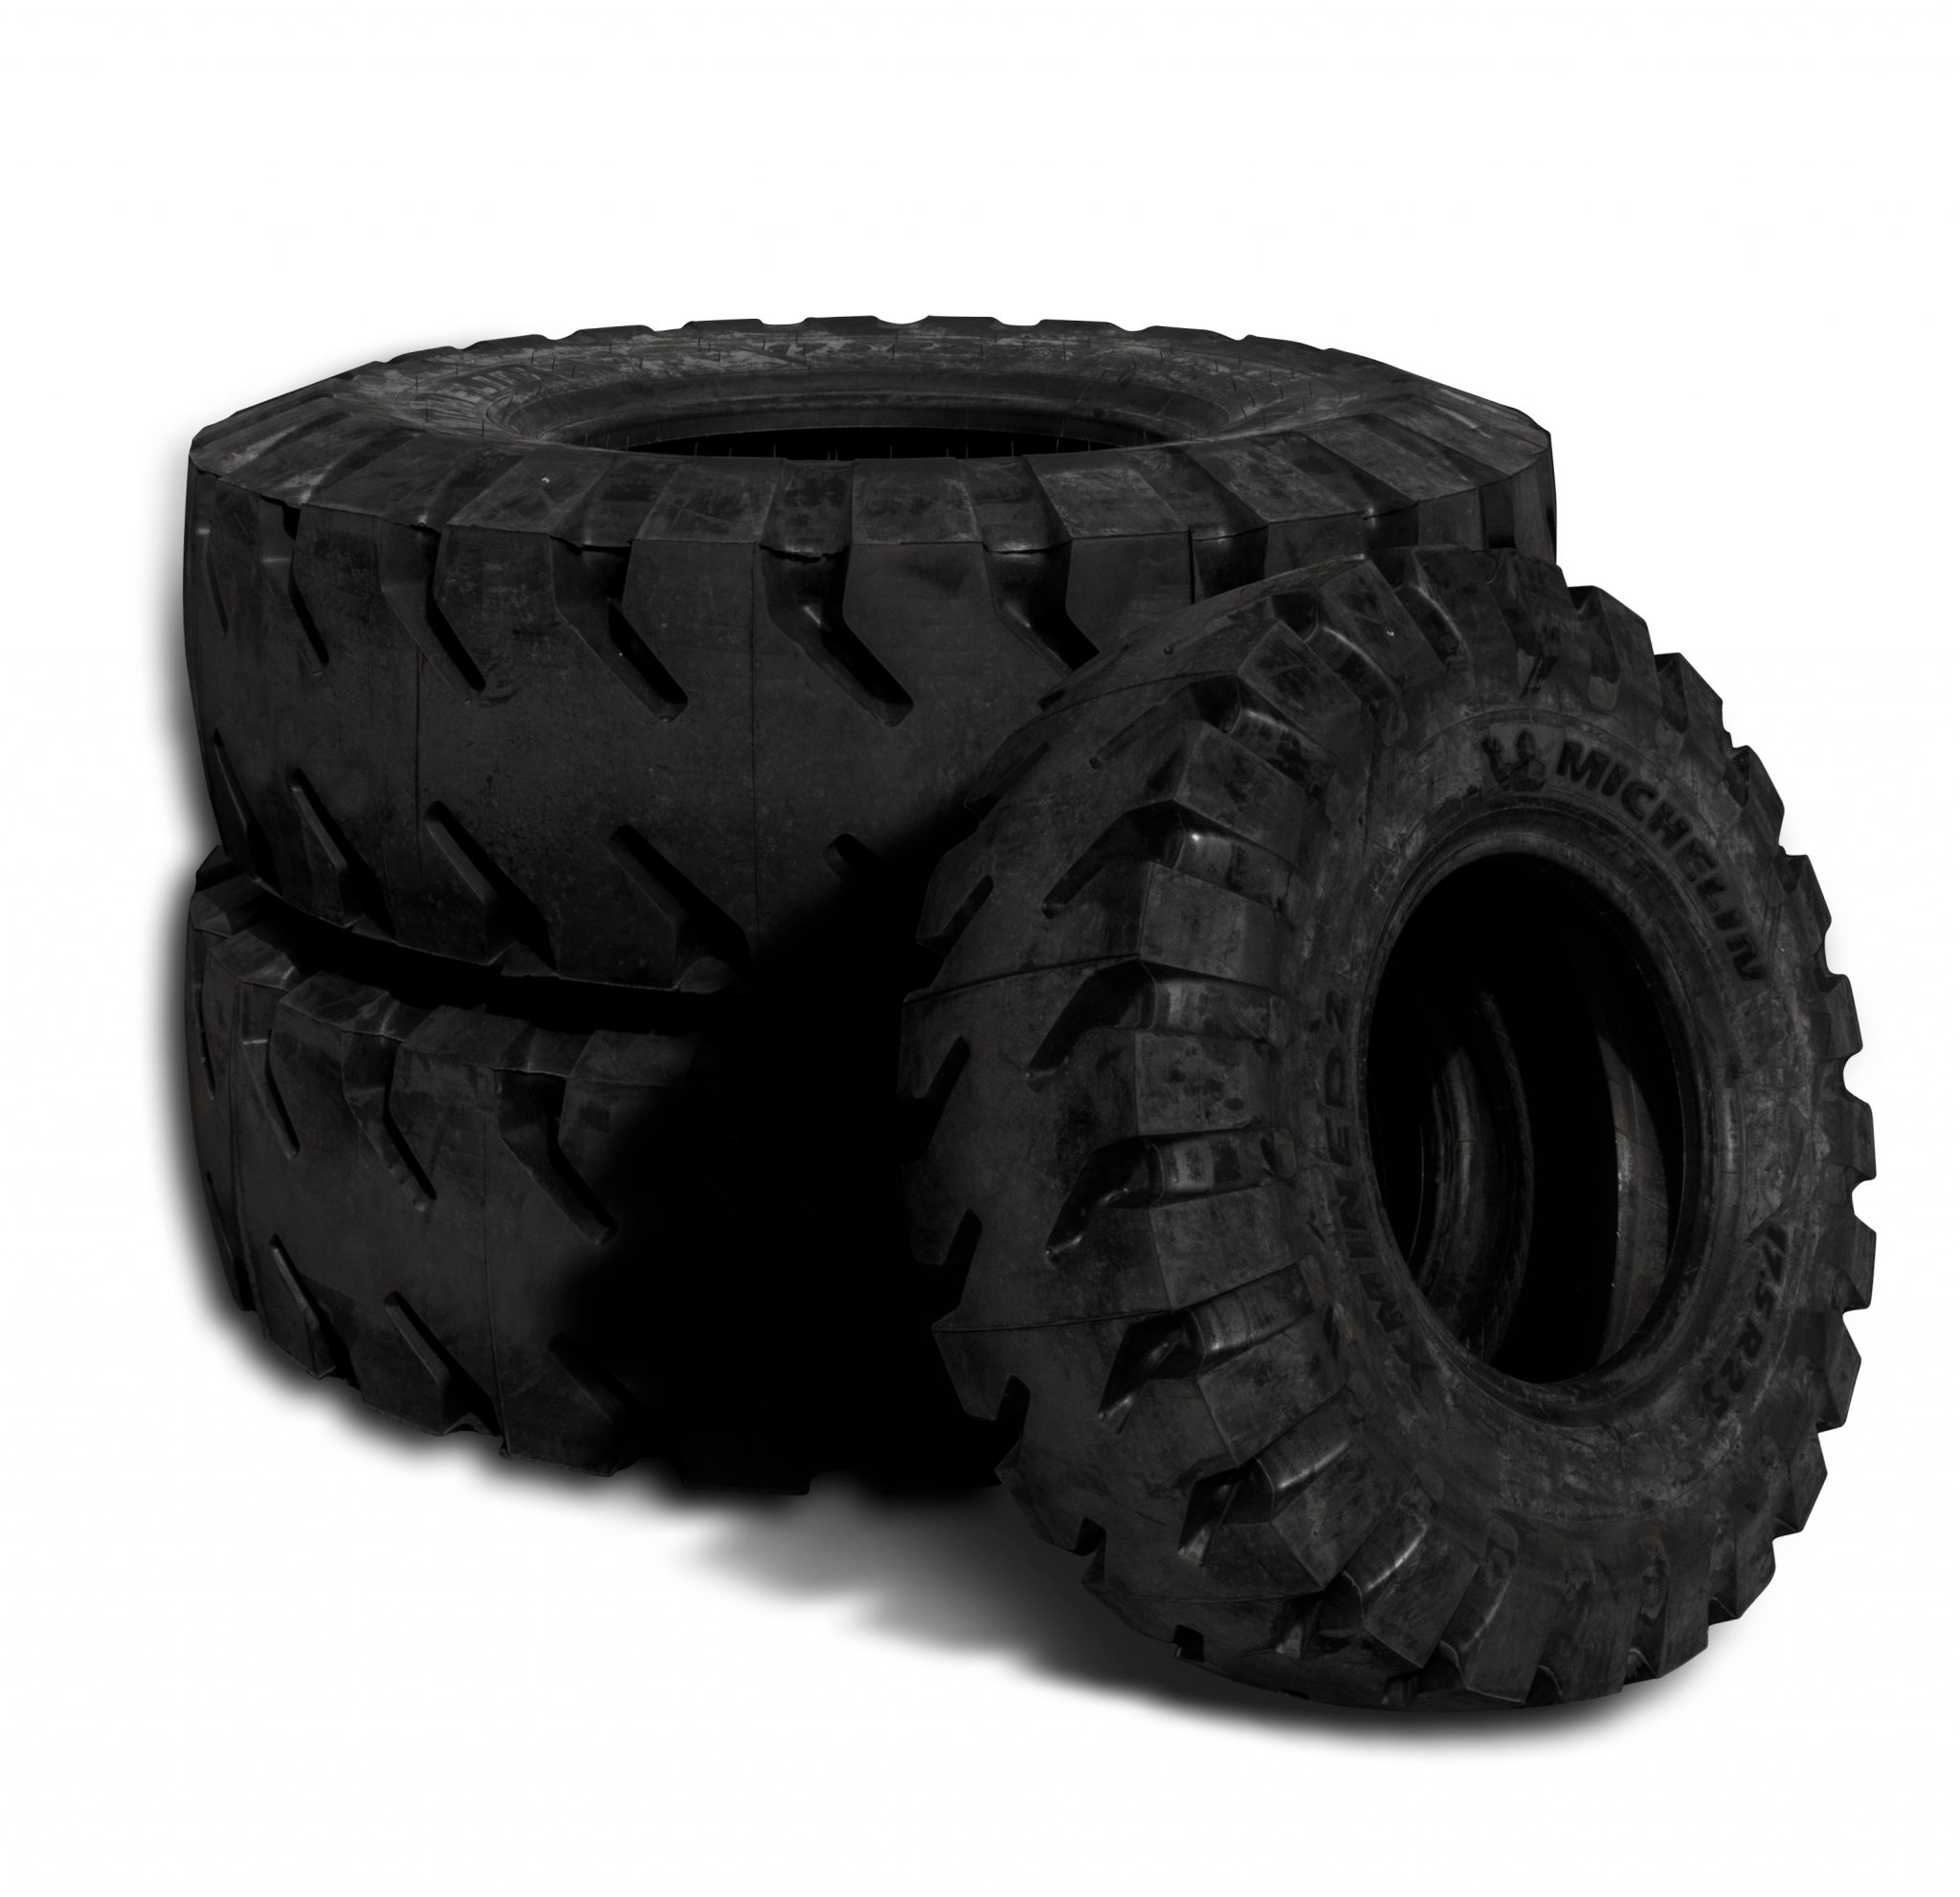 17.5R25 Michelin X Mine D2 Tires